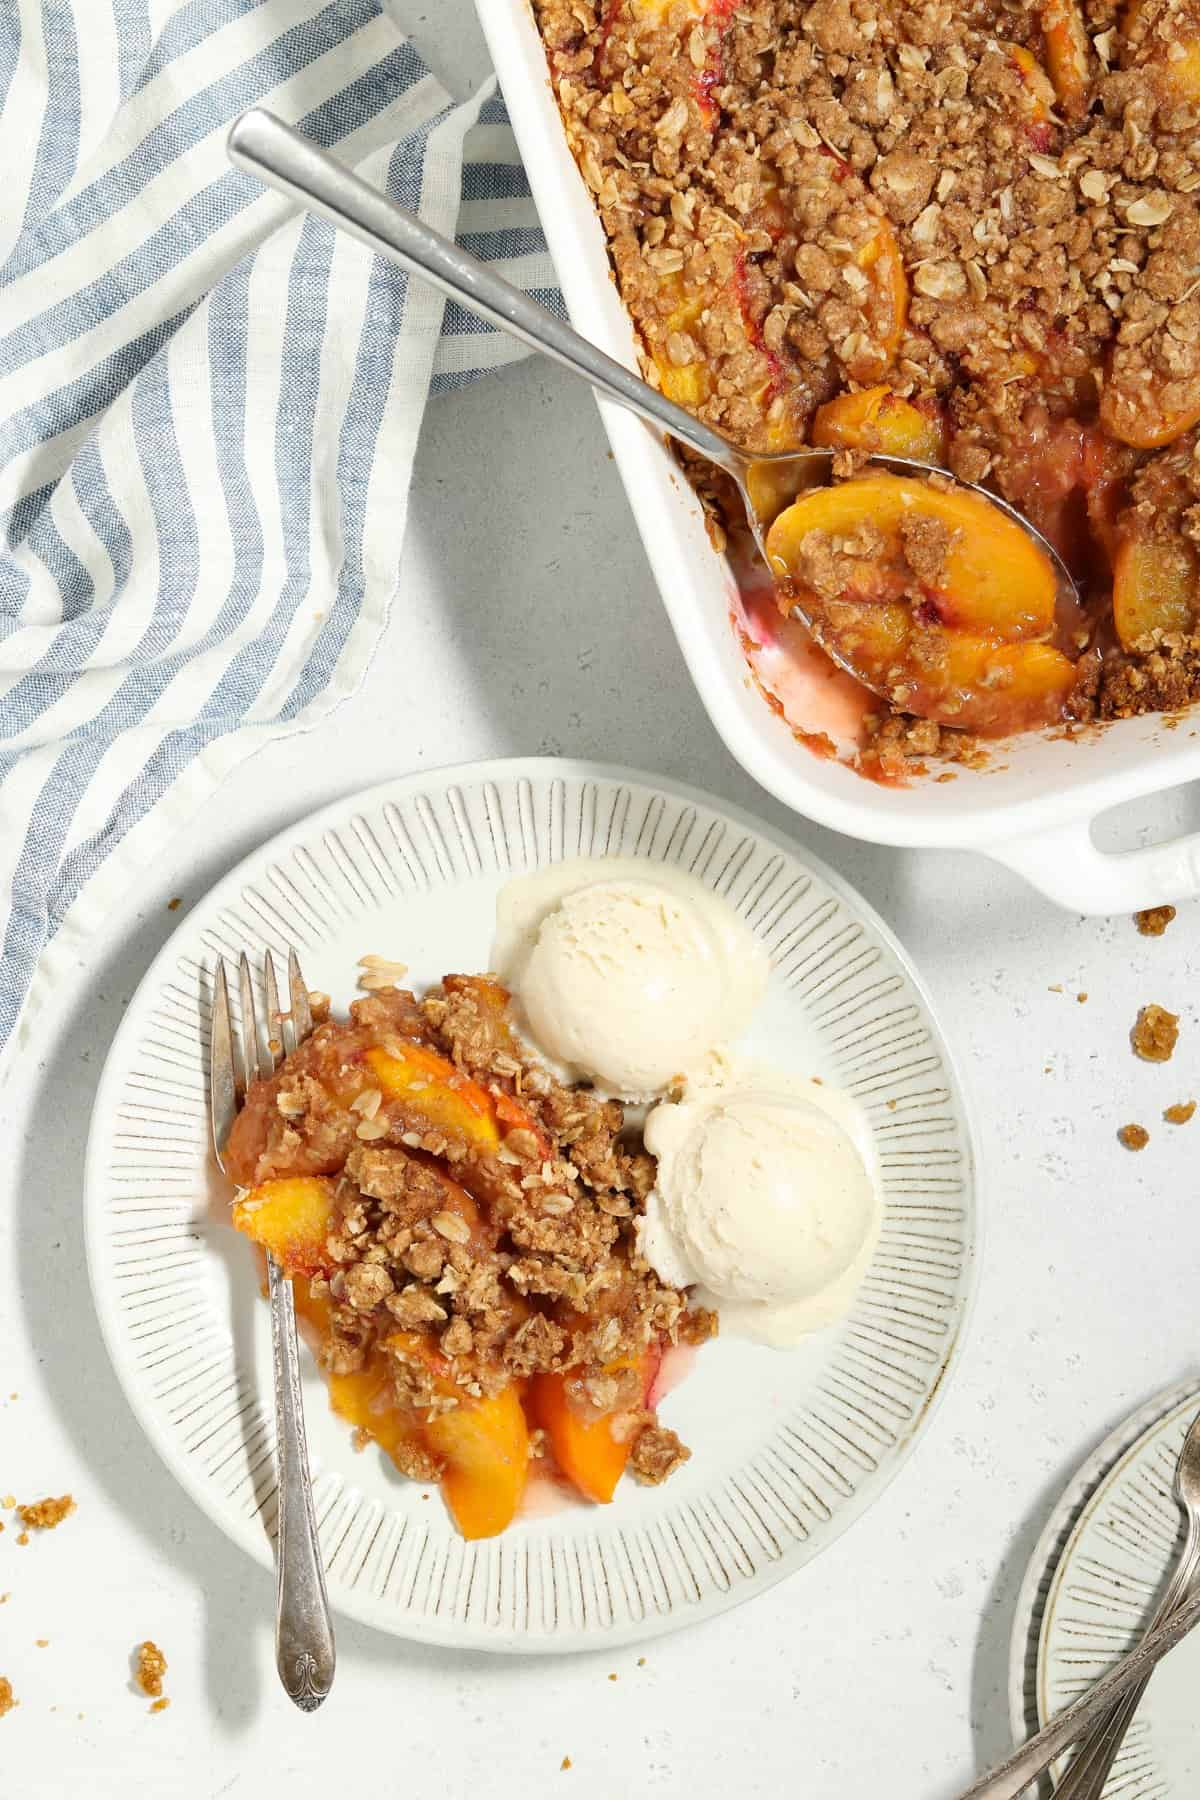 Overhead view of peach crisp and ice cream on a plate. Casserole dish on the side.